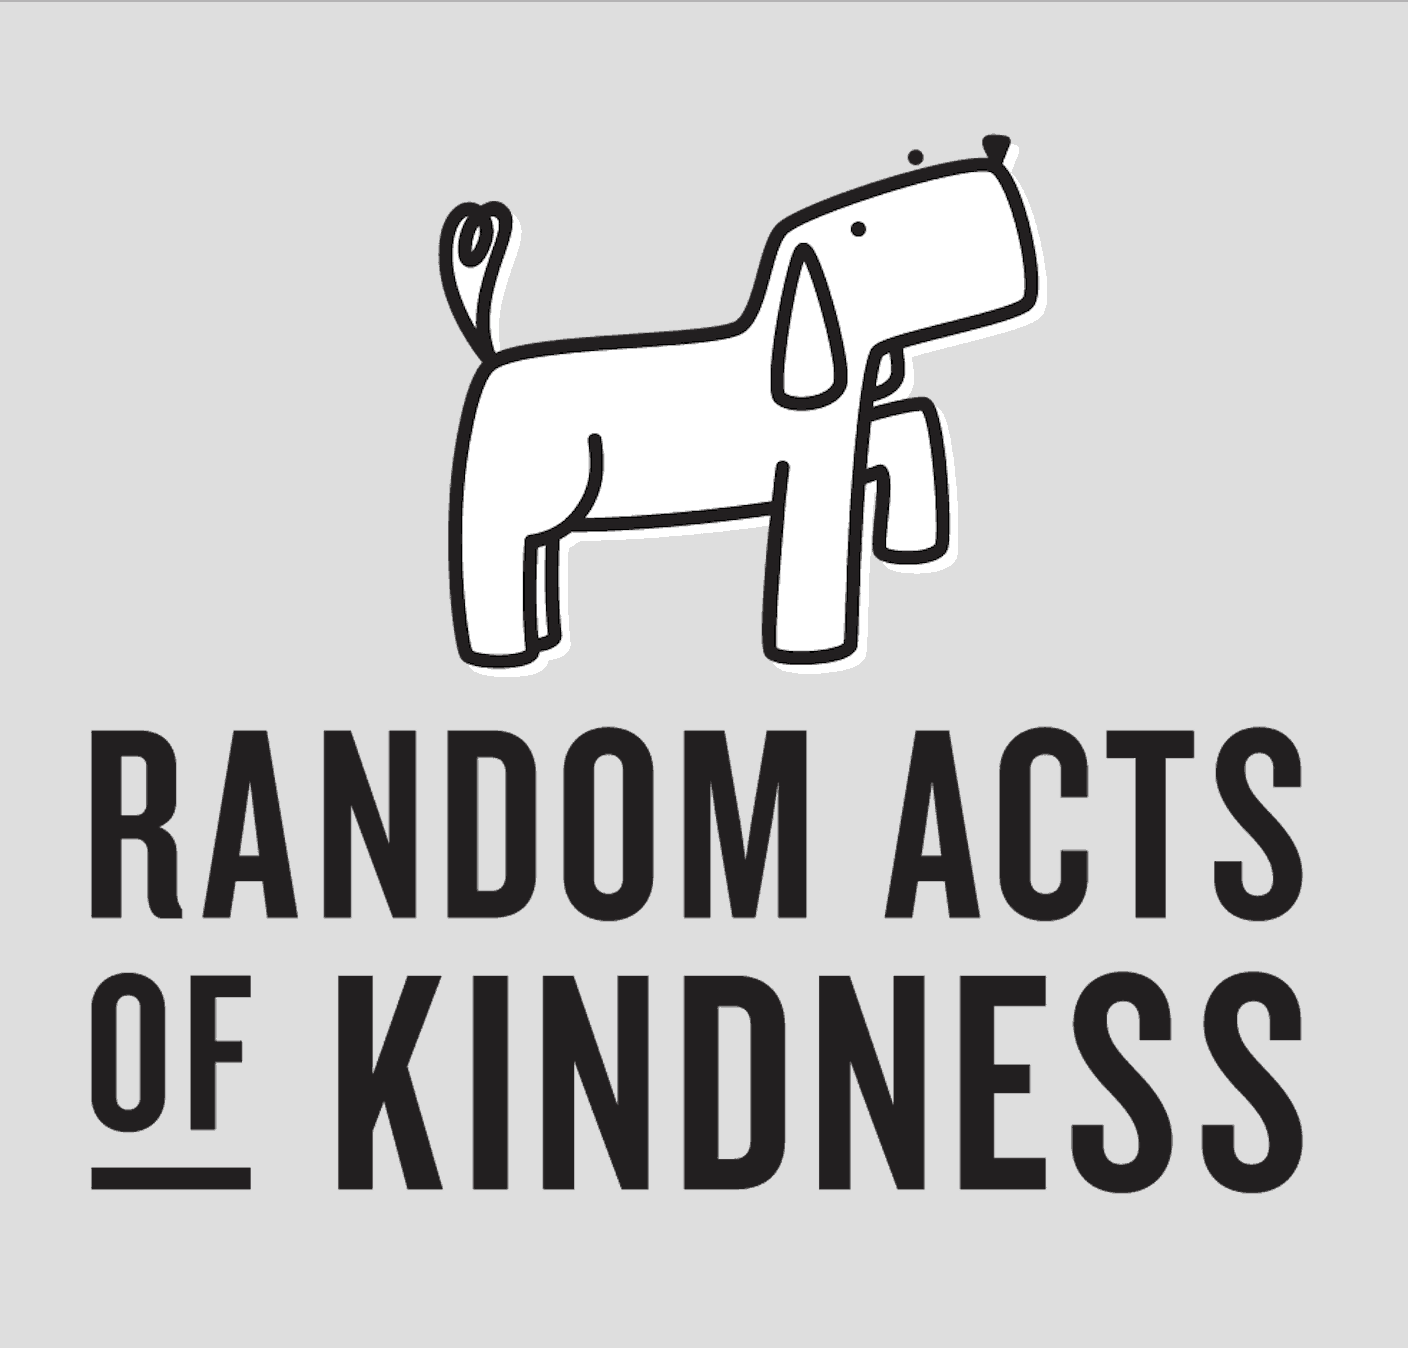 Kindness Starts with One: Random Acts of Kindness Week 2018